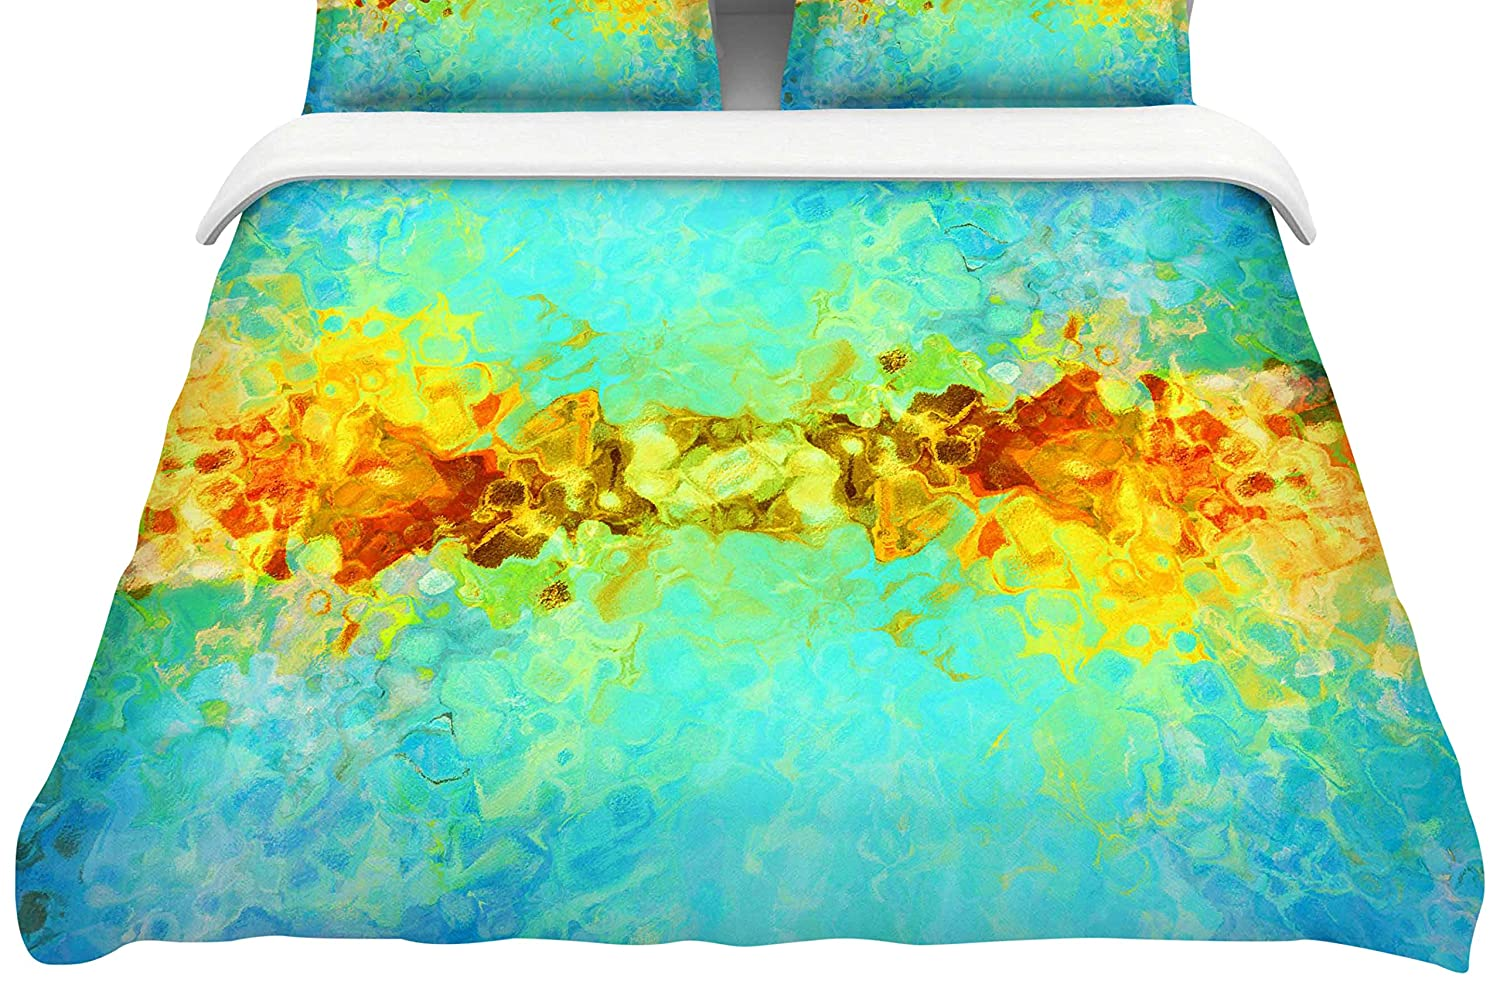 Kess InHouse Ginkelmier Colorful Earthly Blue Yellow Abstract King Featherweight Duvet Cover 104 x 88